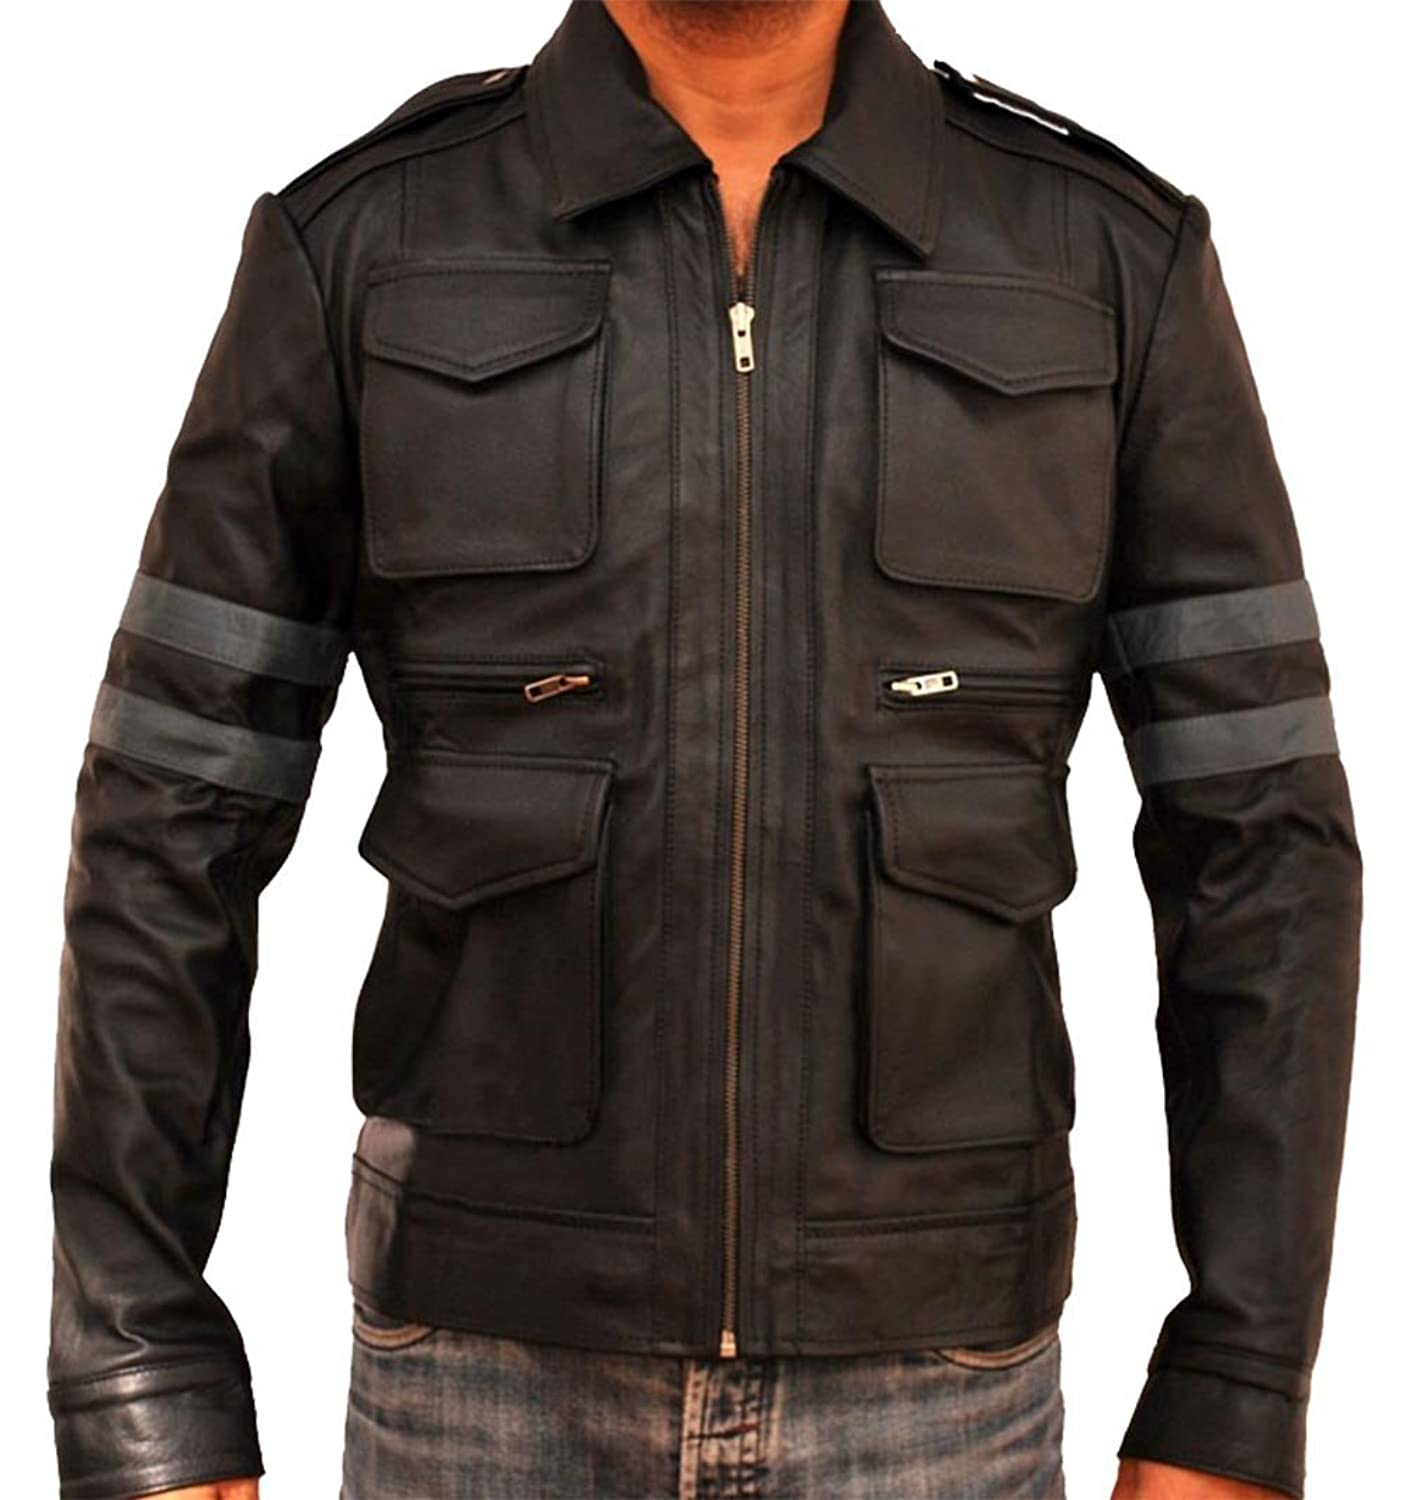 Resident Evil 6 Leon S. Kennedy Real Leather Jacket